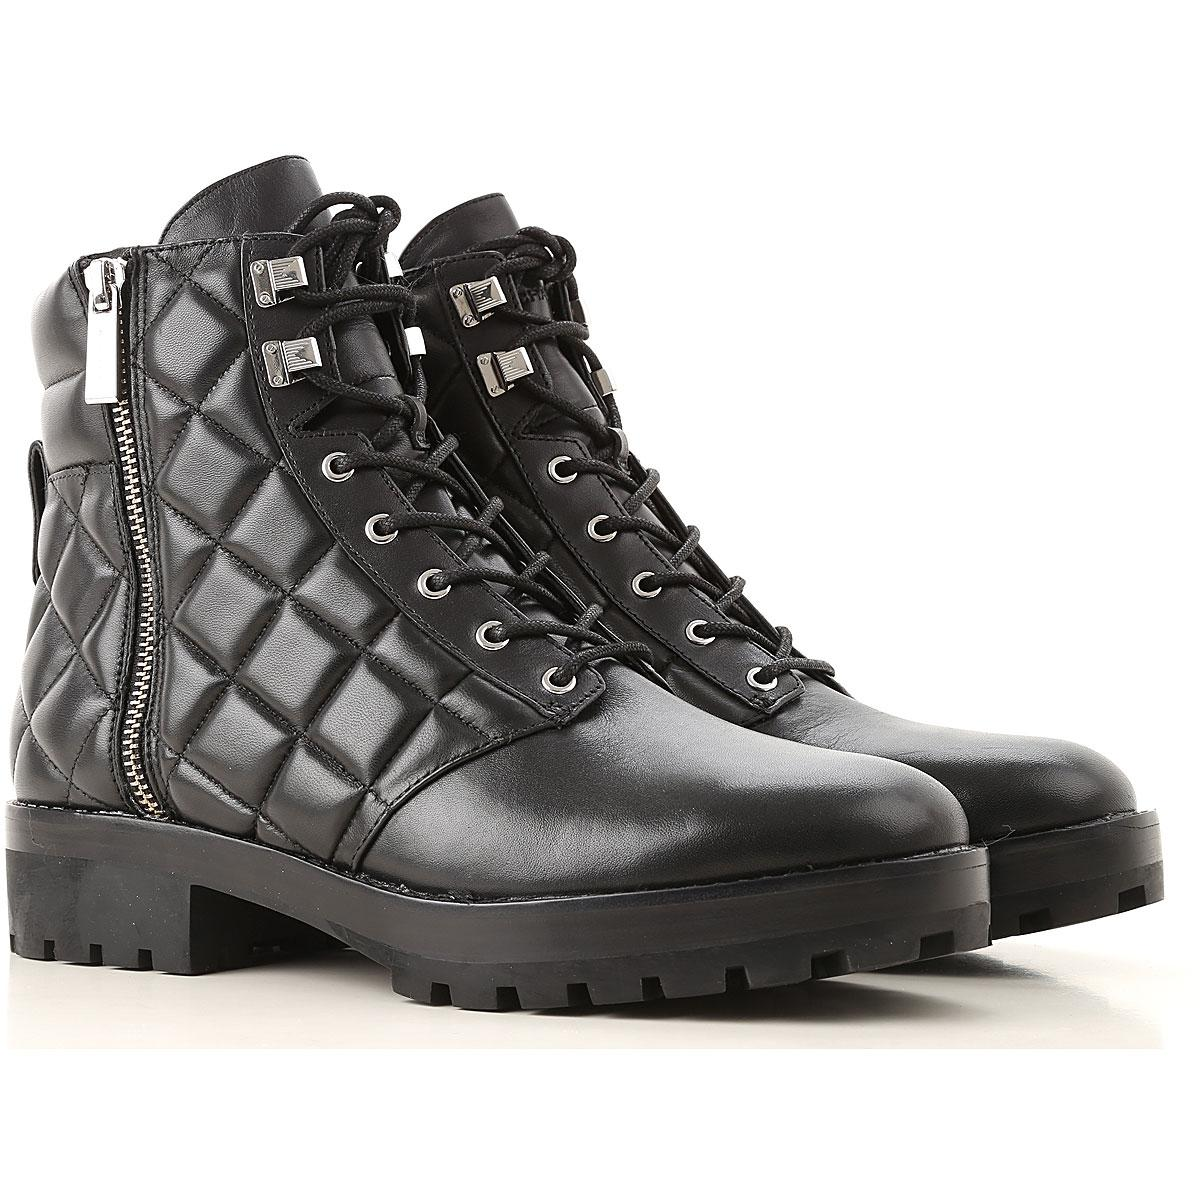 e1e8bc15920 Michael Kors Rosario Leather Combat Boot in Black - Save 59% - Lyst